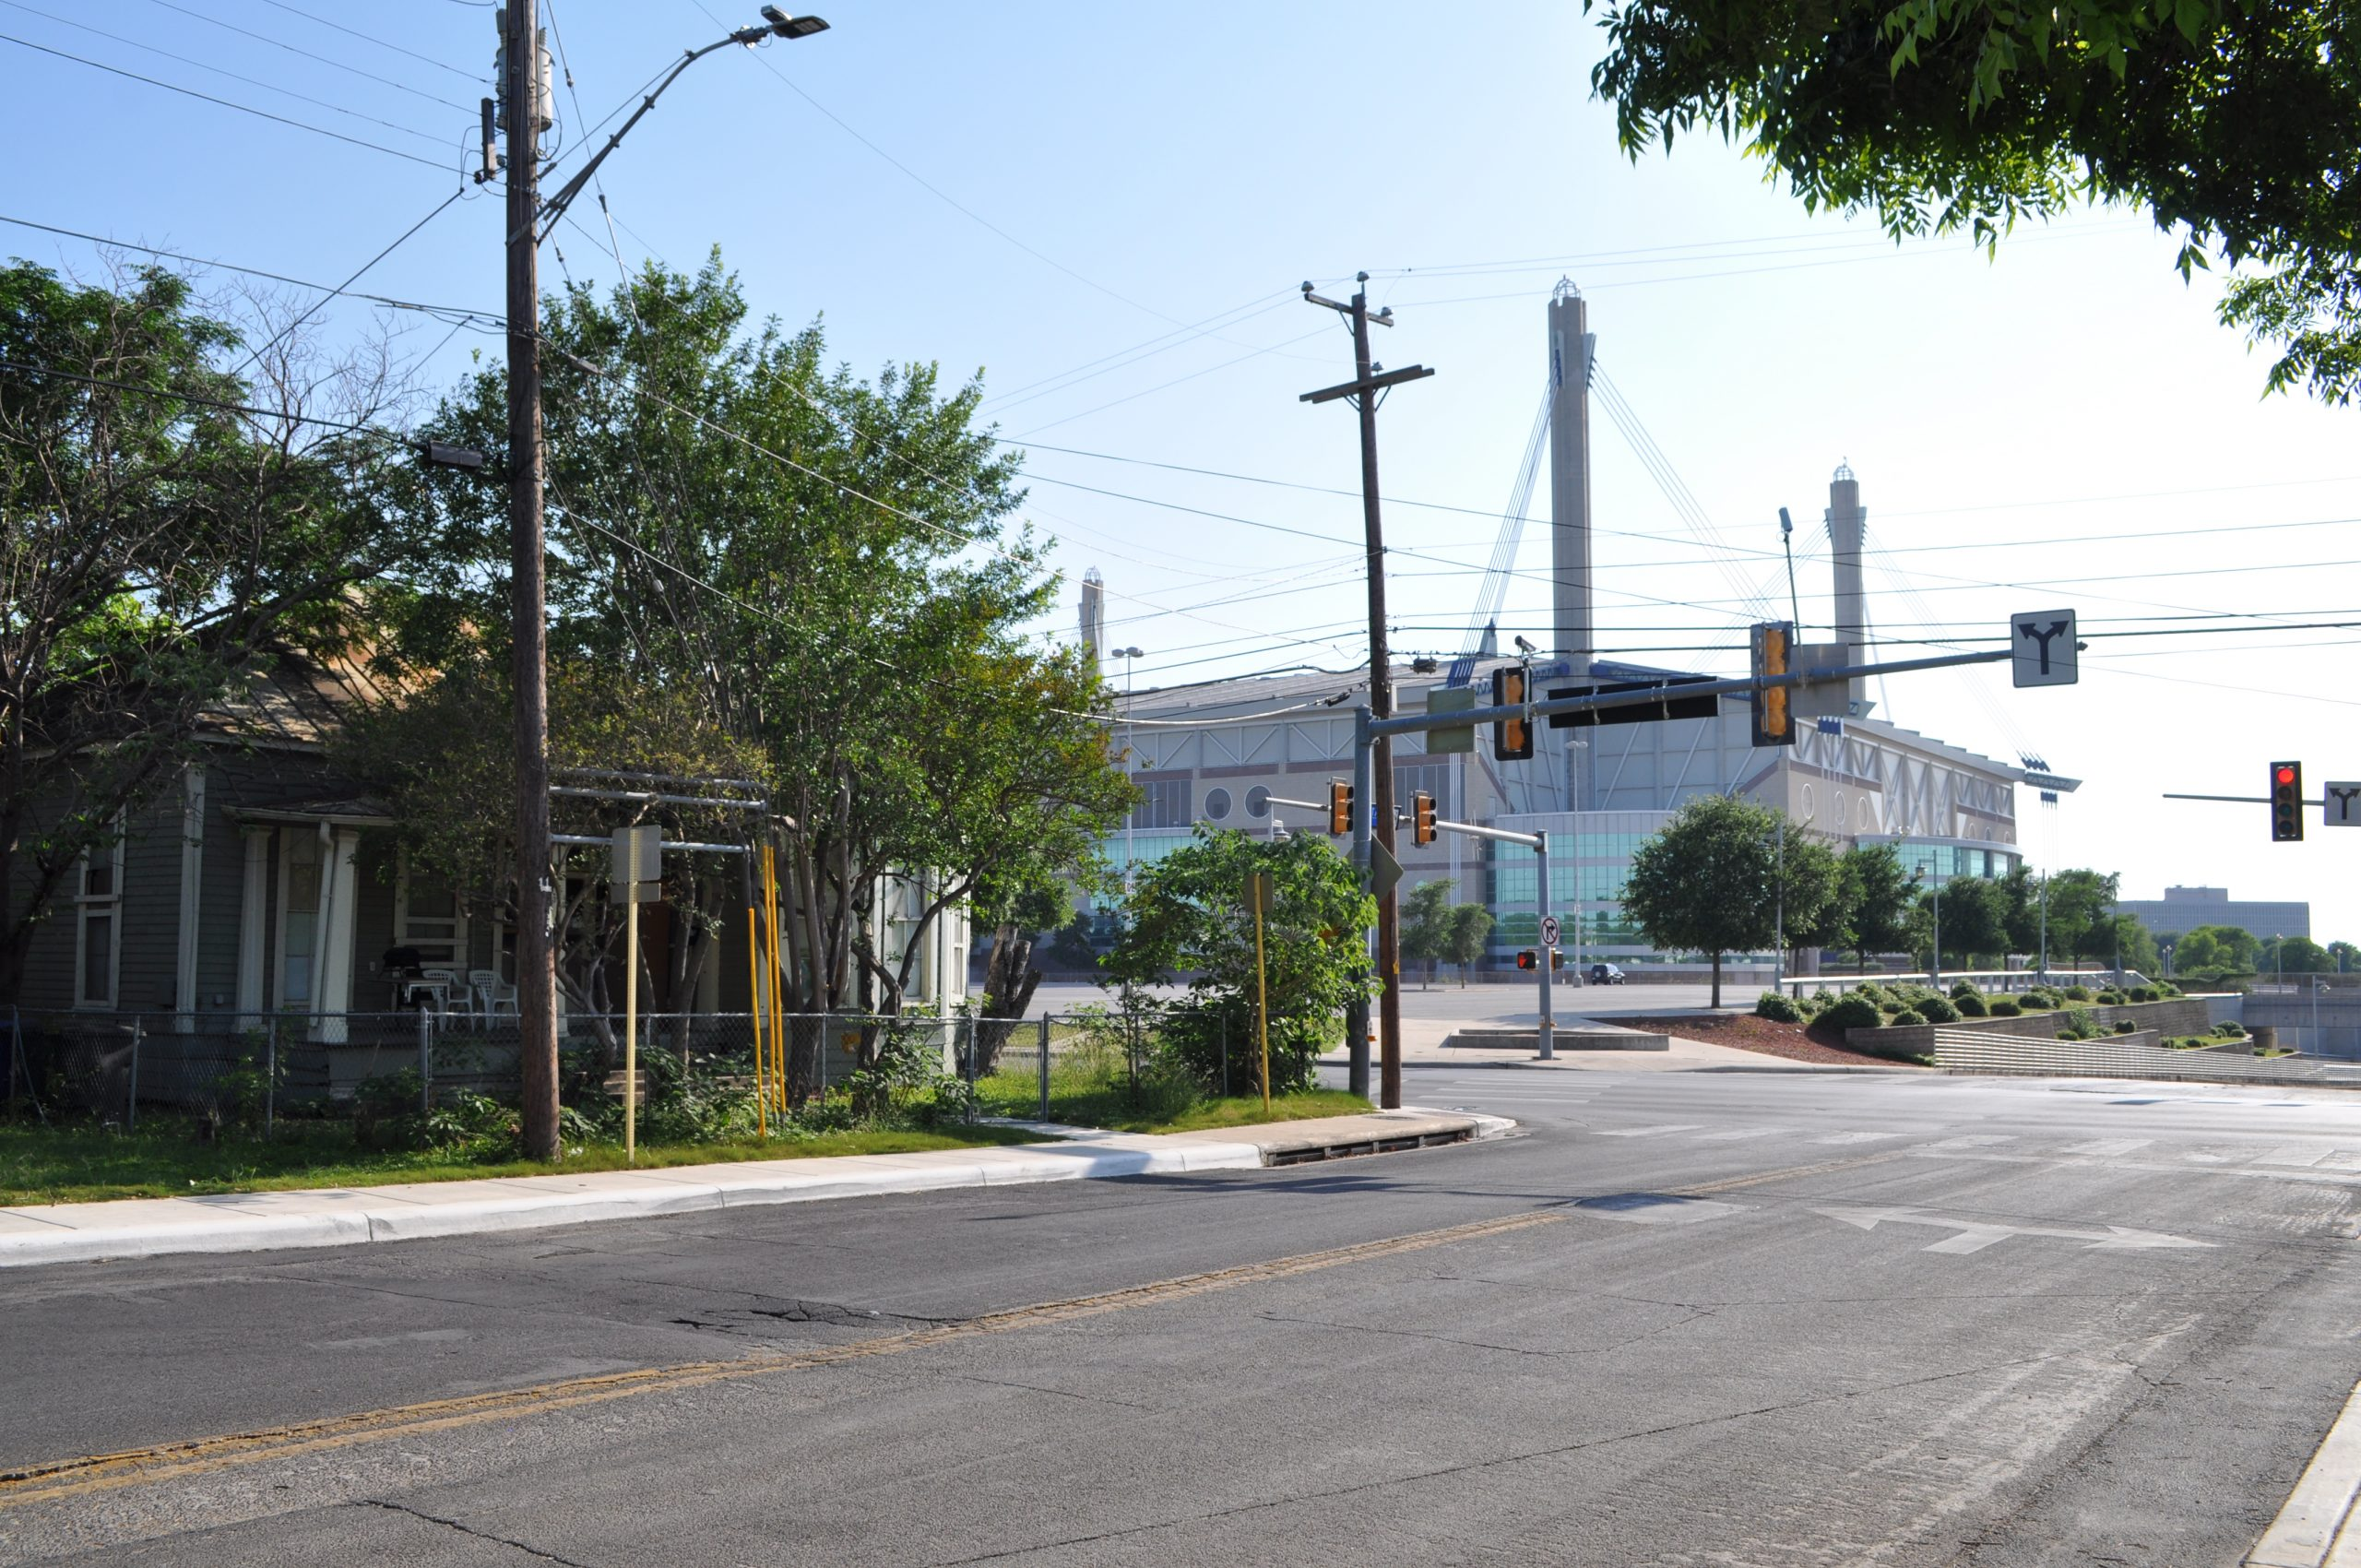 A Westside neighborhood just across Cherry Street from the Alamodome. Photo by Iris Dimmick.